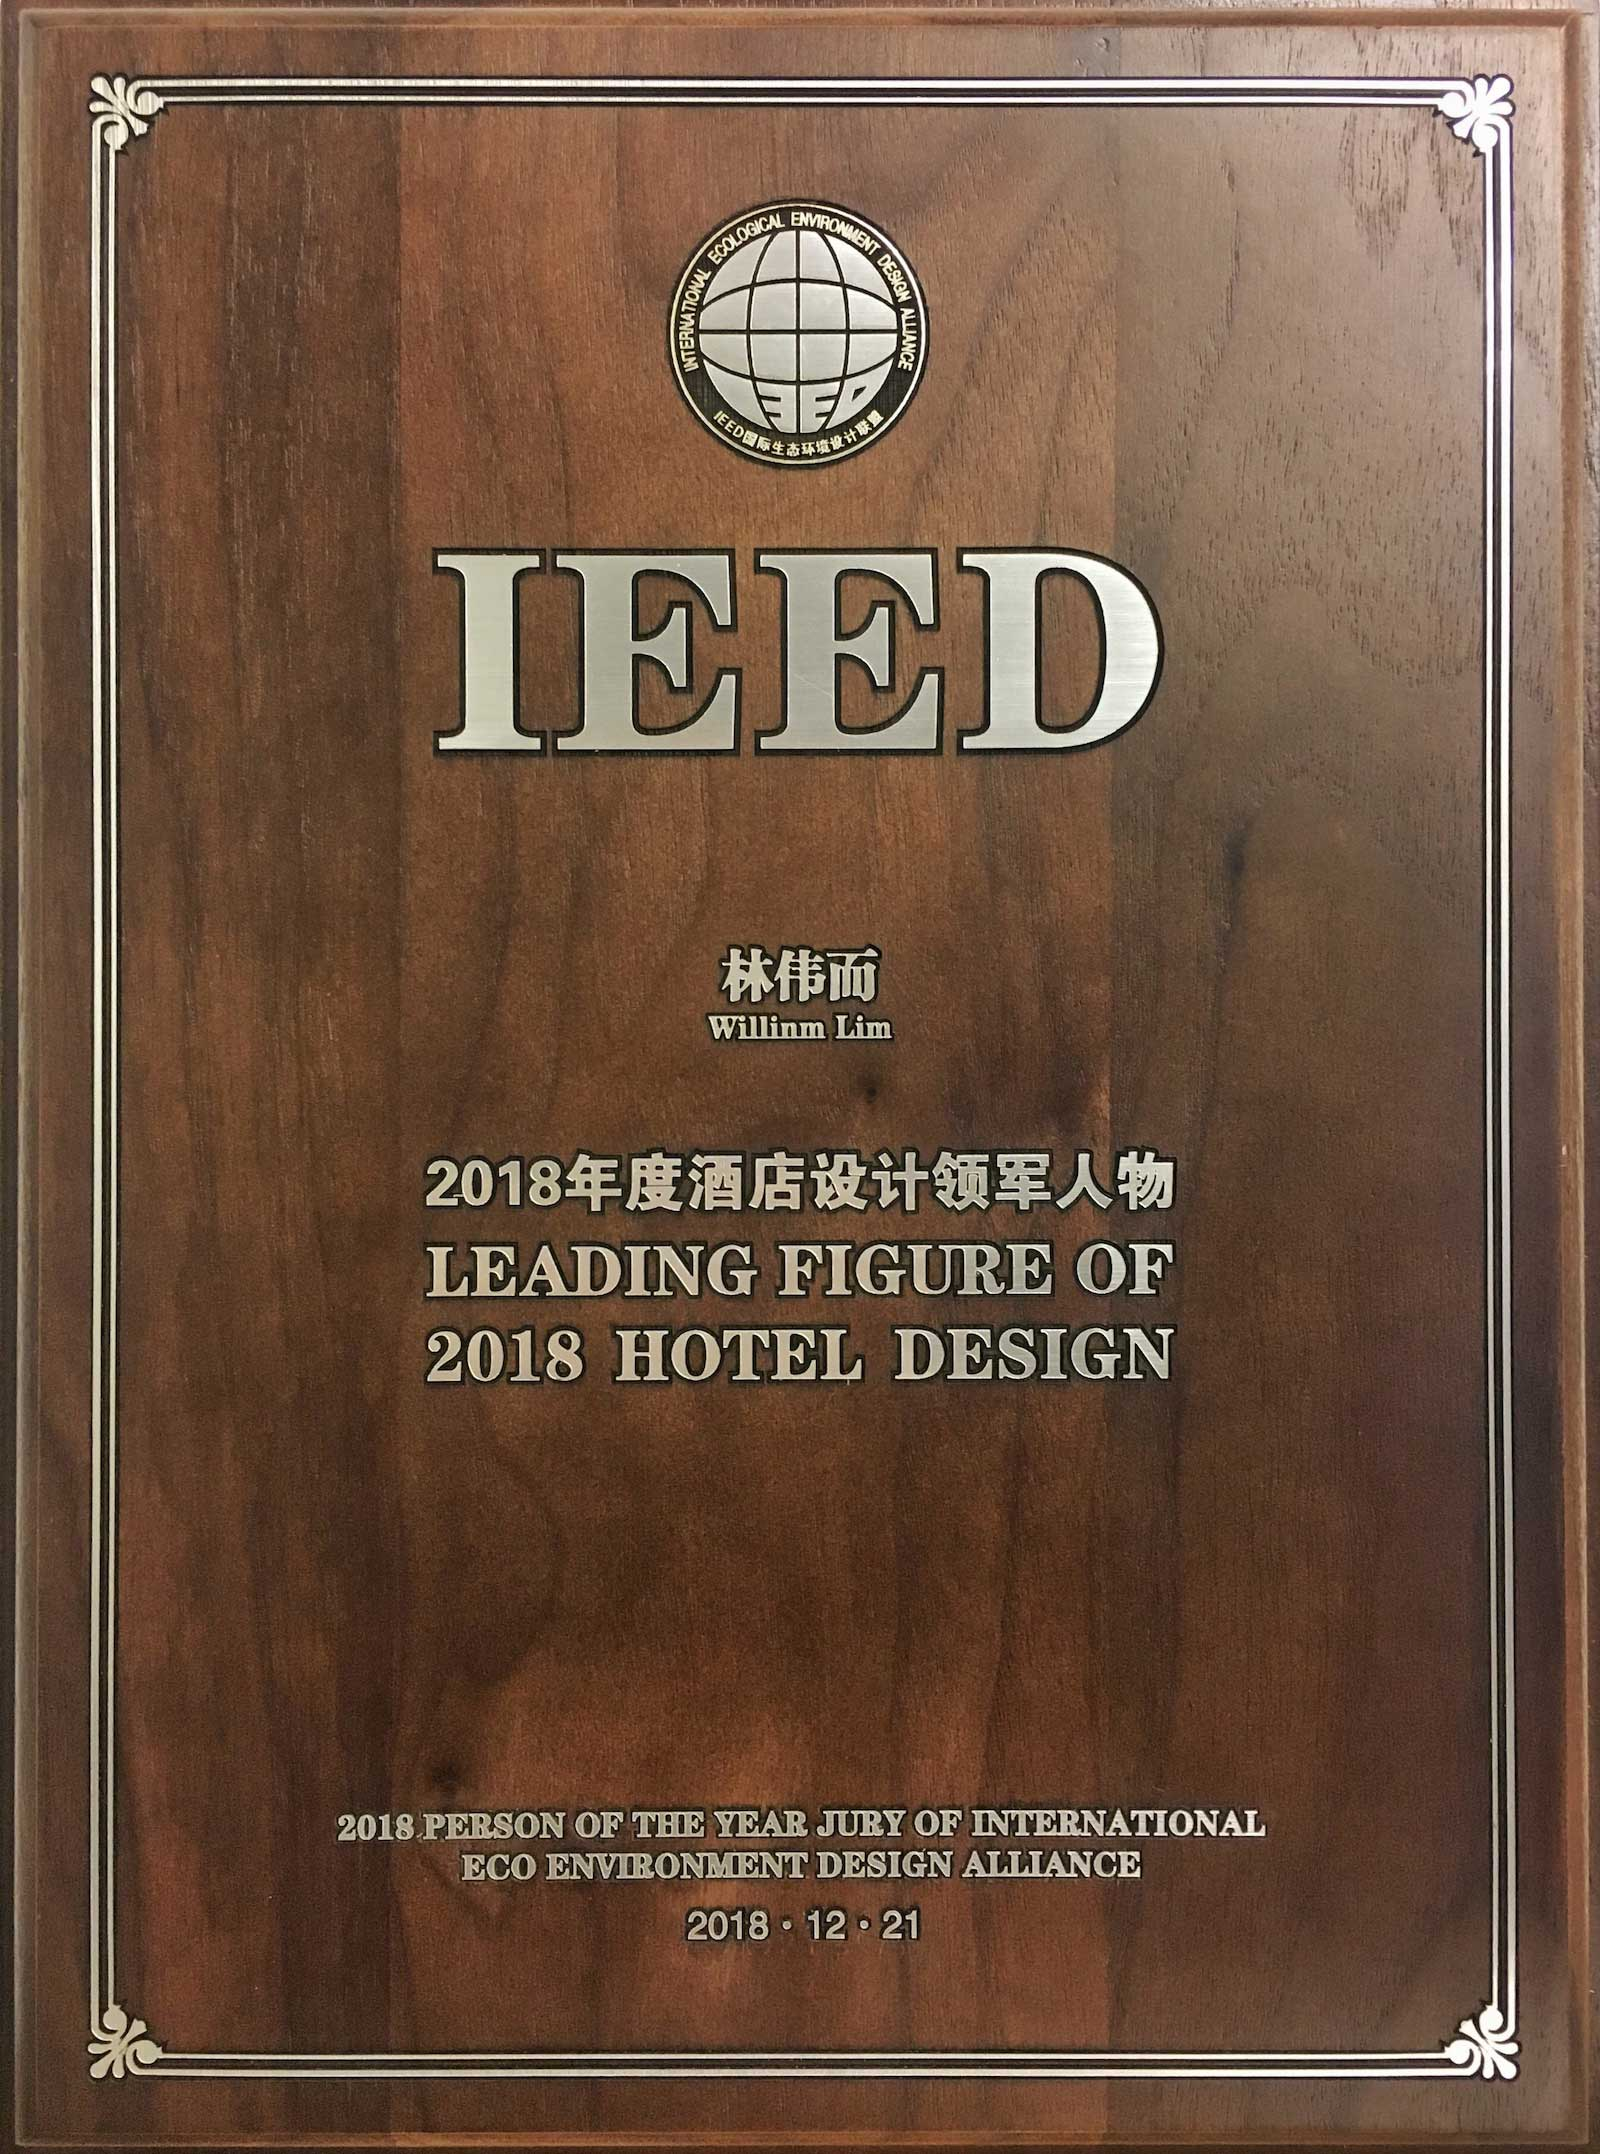 IEED Leading Figure of 2018 Hotel Design